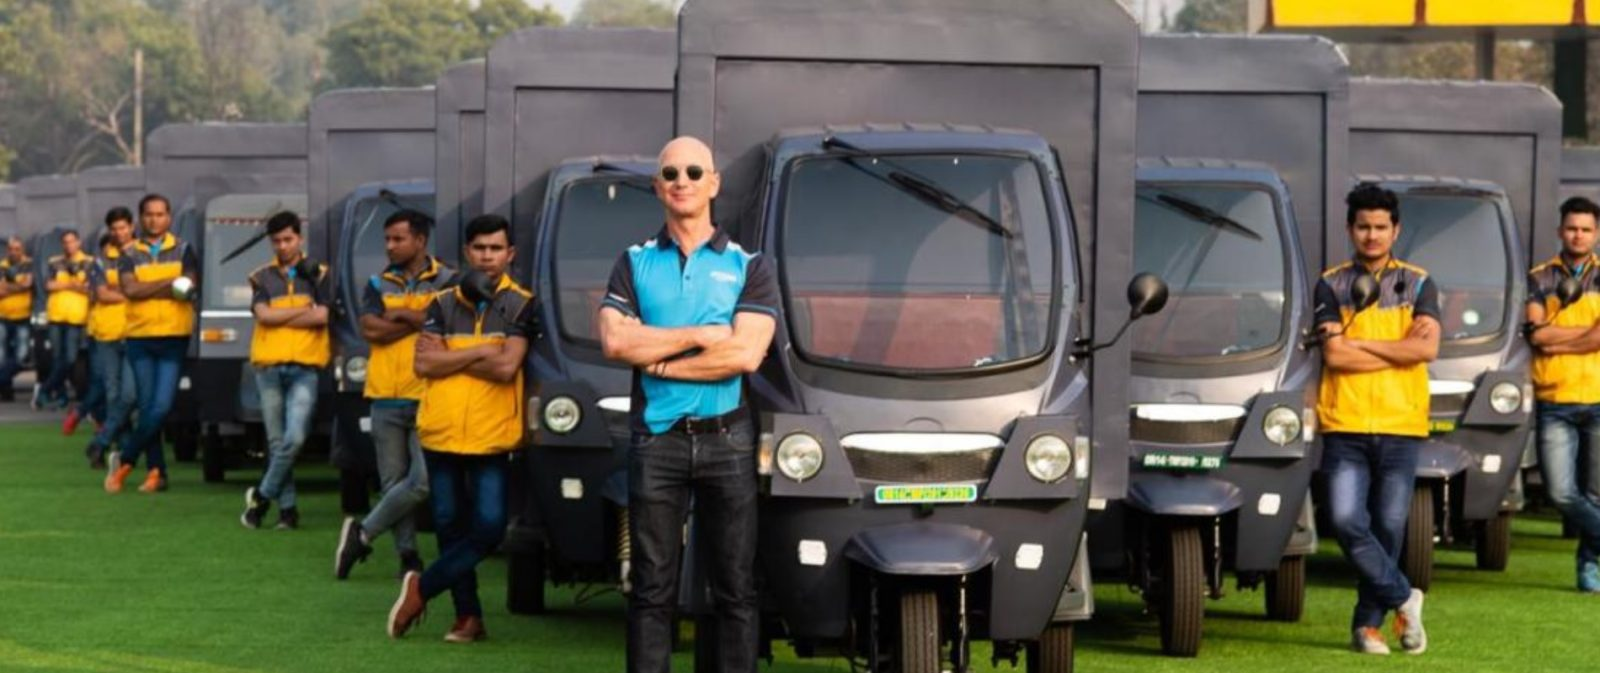 Watch Jeff Bezos drive Amazon's new electric rickshaw